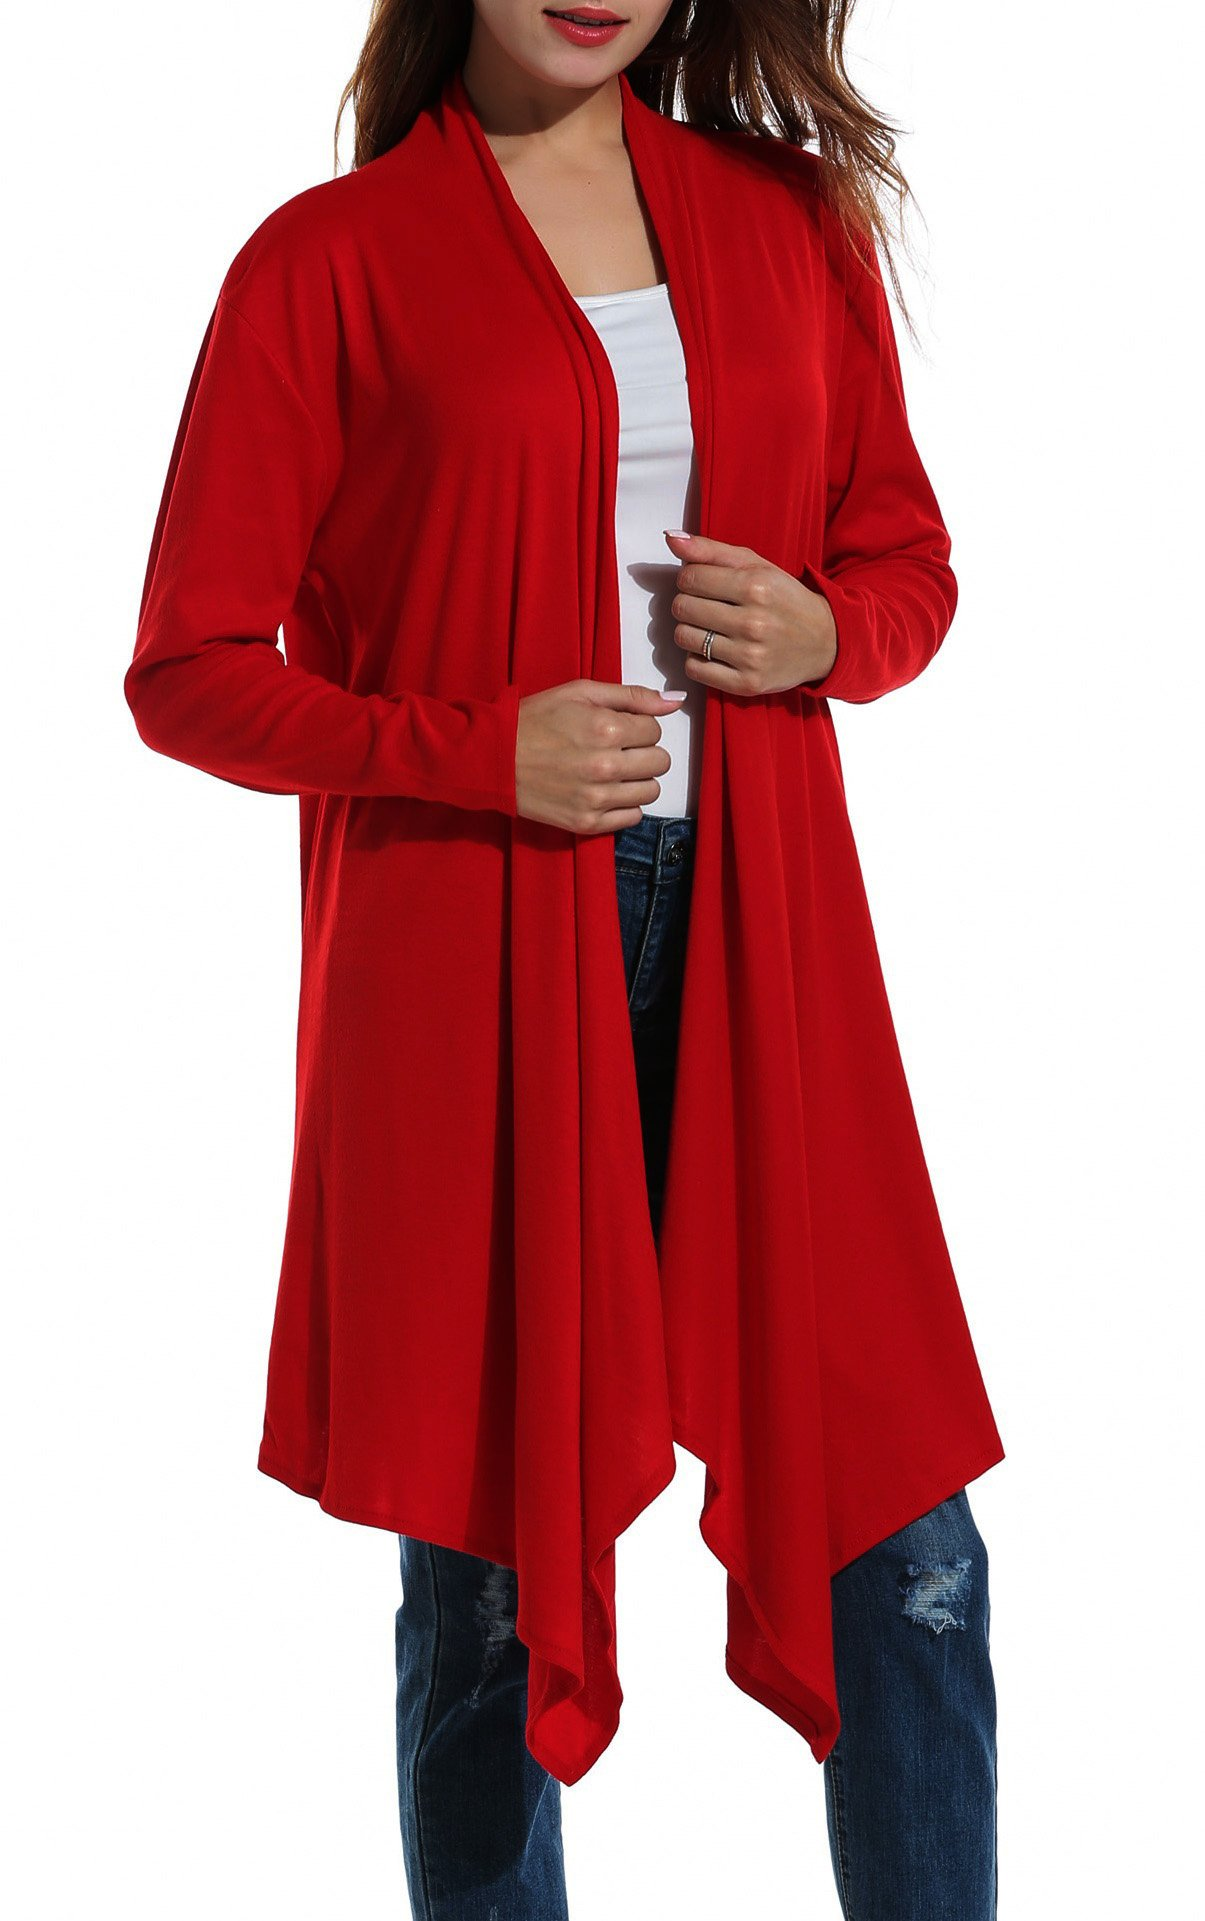 Zeagoo Women Asymmetric Draped Open Front Long Sleeve Soft Duster Cardigan Sweater,Date Red,X-Large